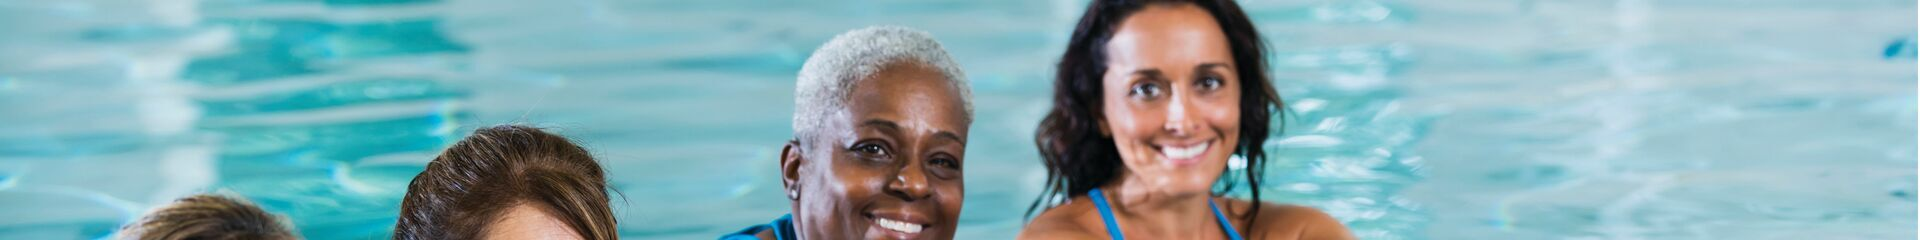 Picture of three women in the swimming pool at the YMCA water fitness classes